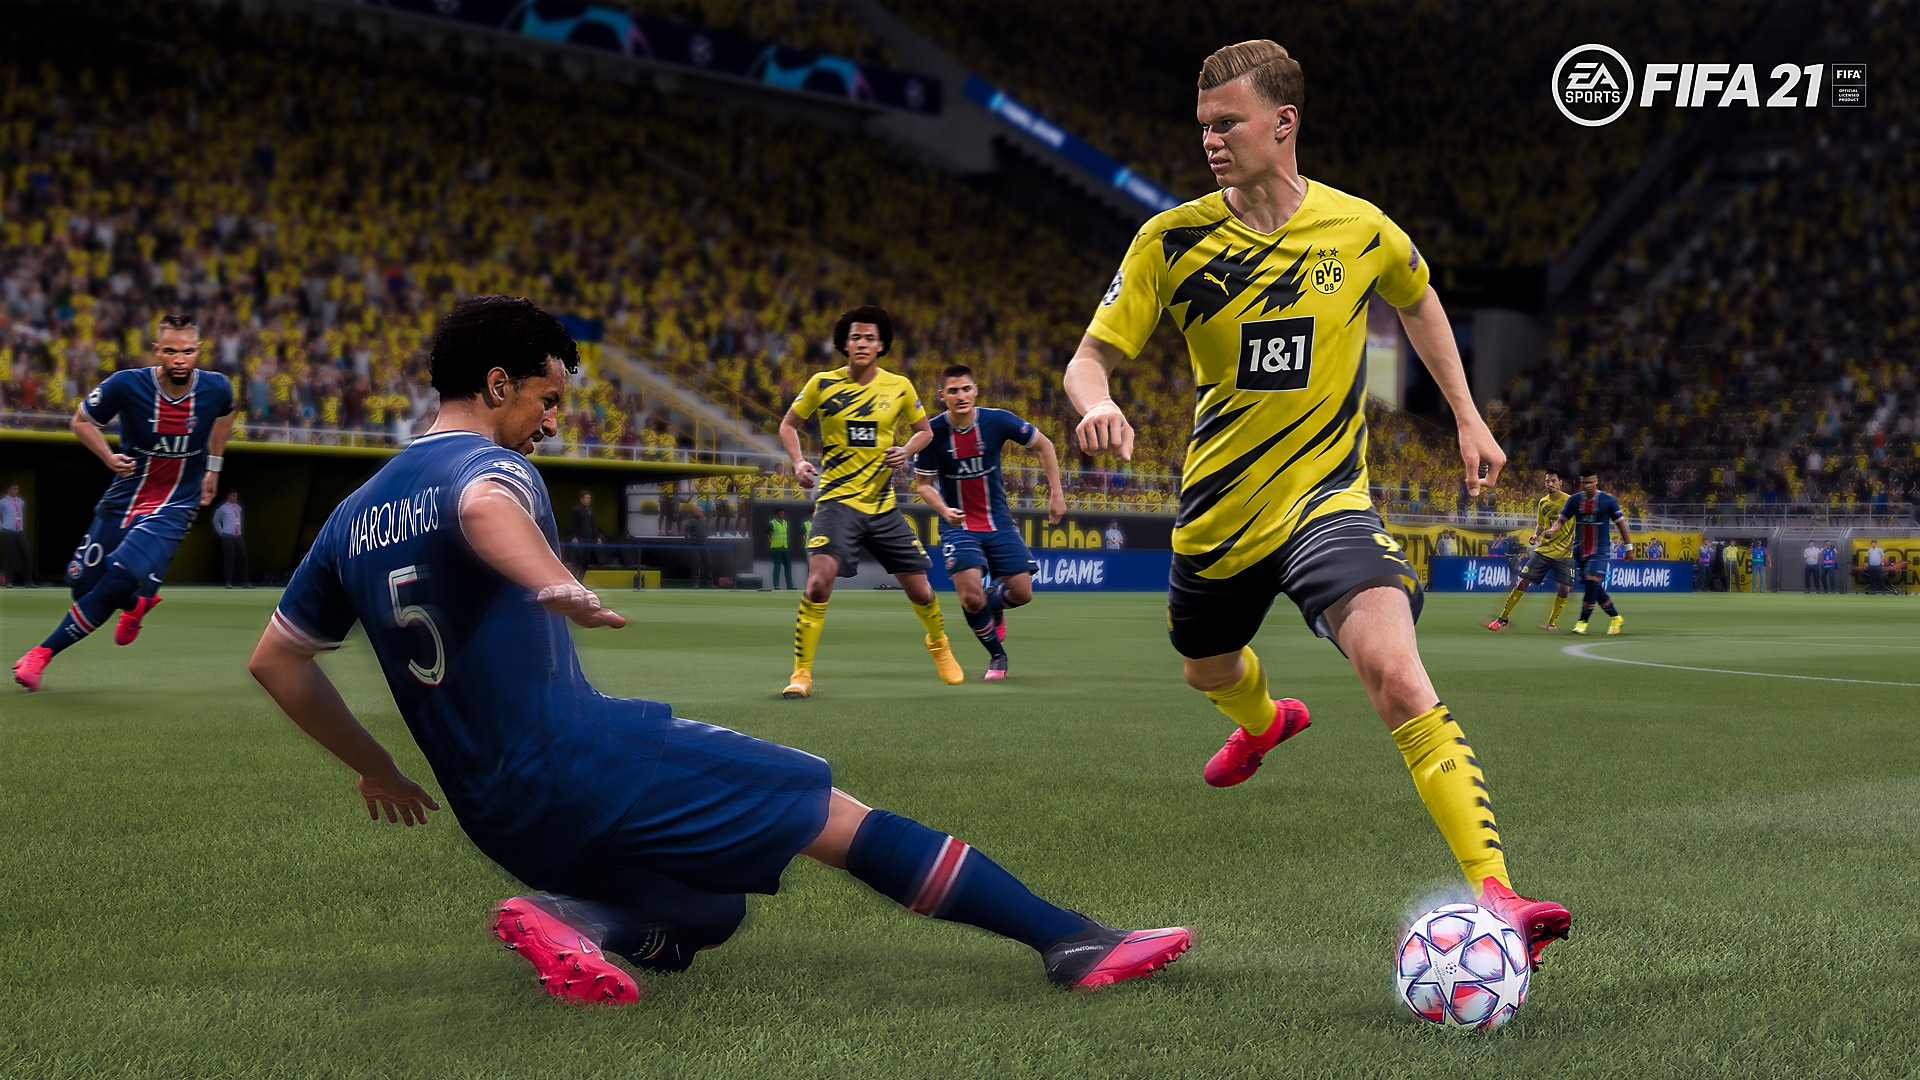 EA Sports FIFA 21 - PS4 Reveal Screenshot